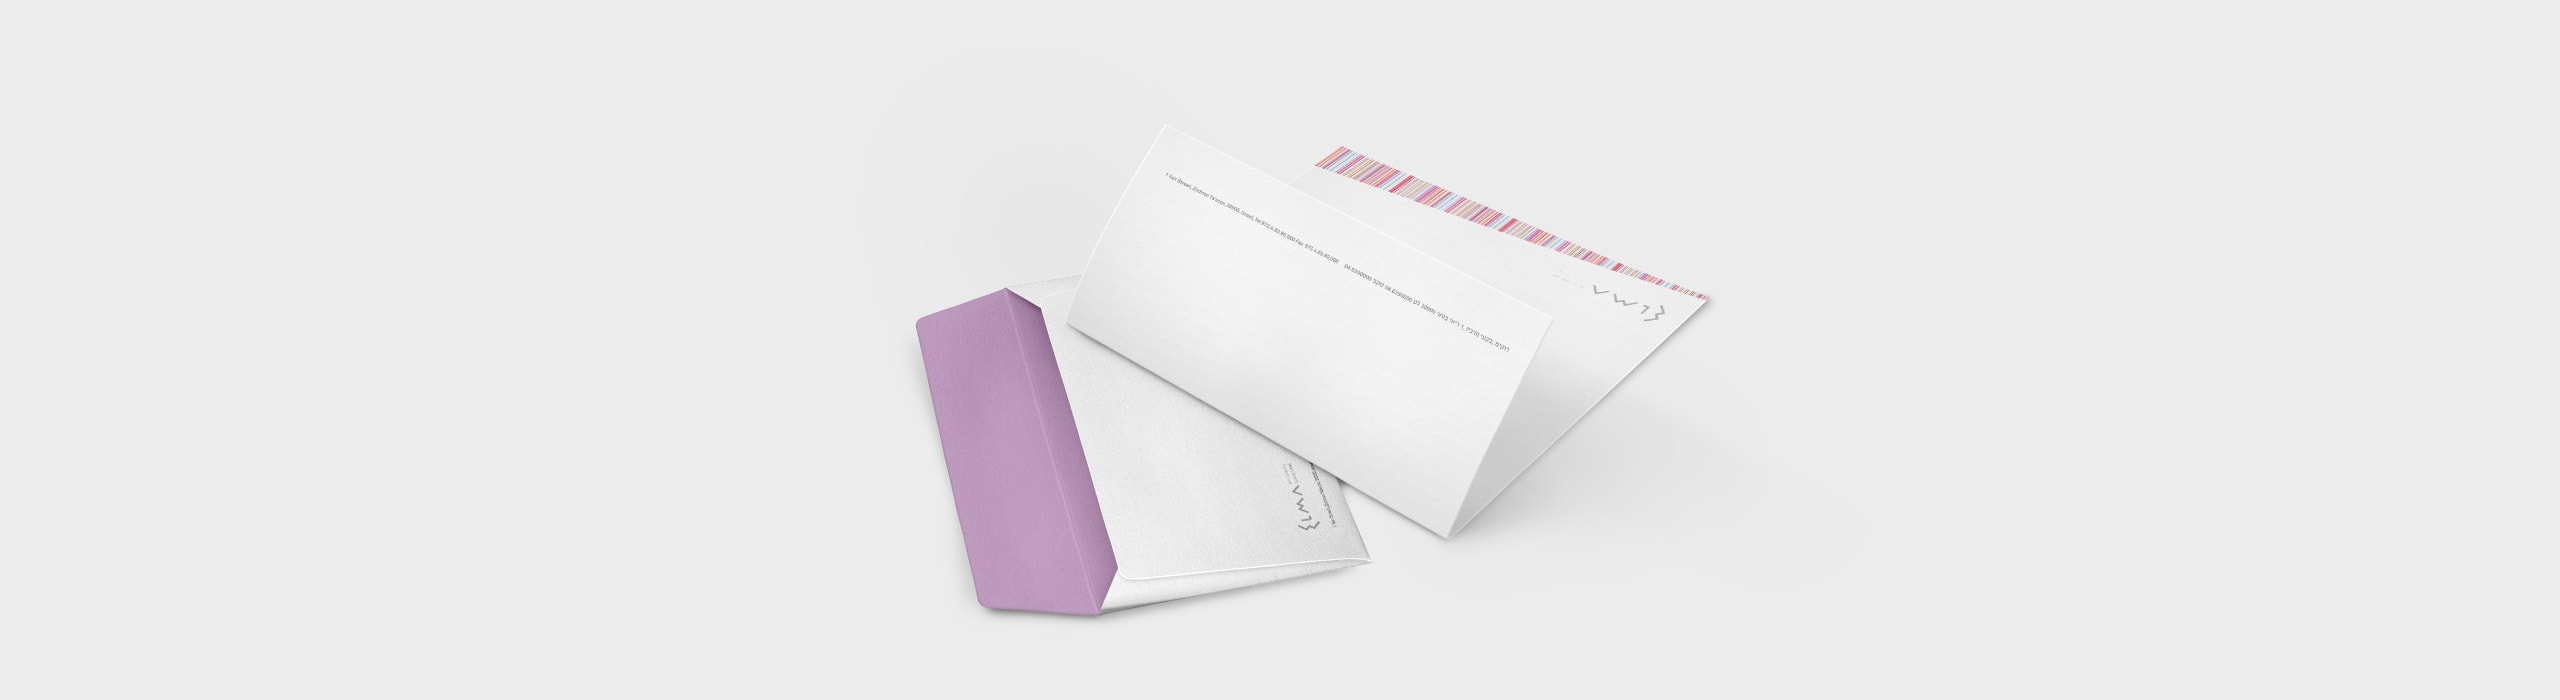 Elma - natie-elma-envelope - Natie Branding Agency